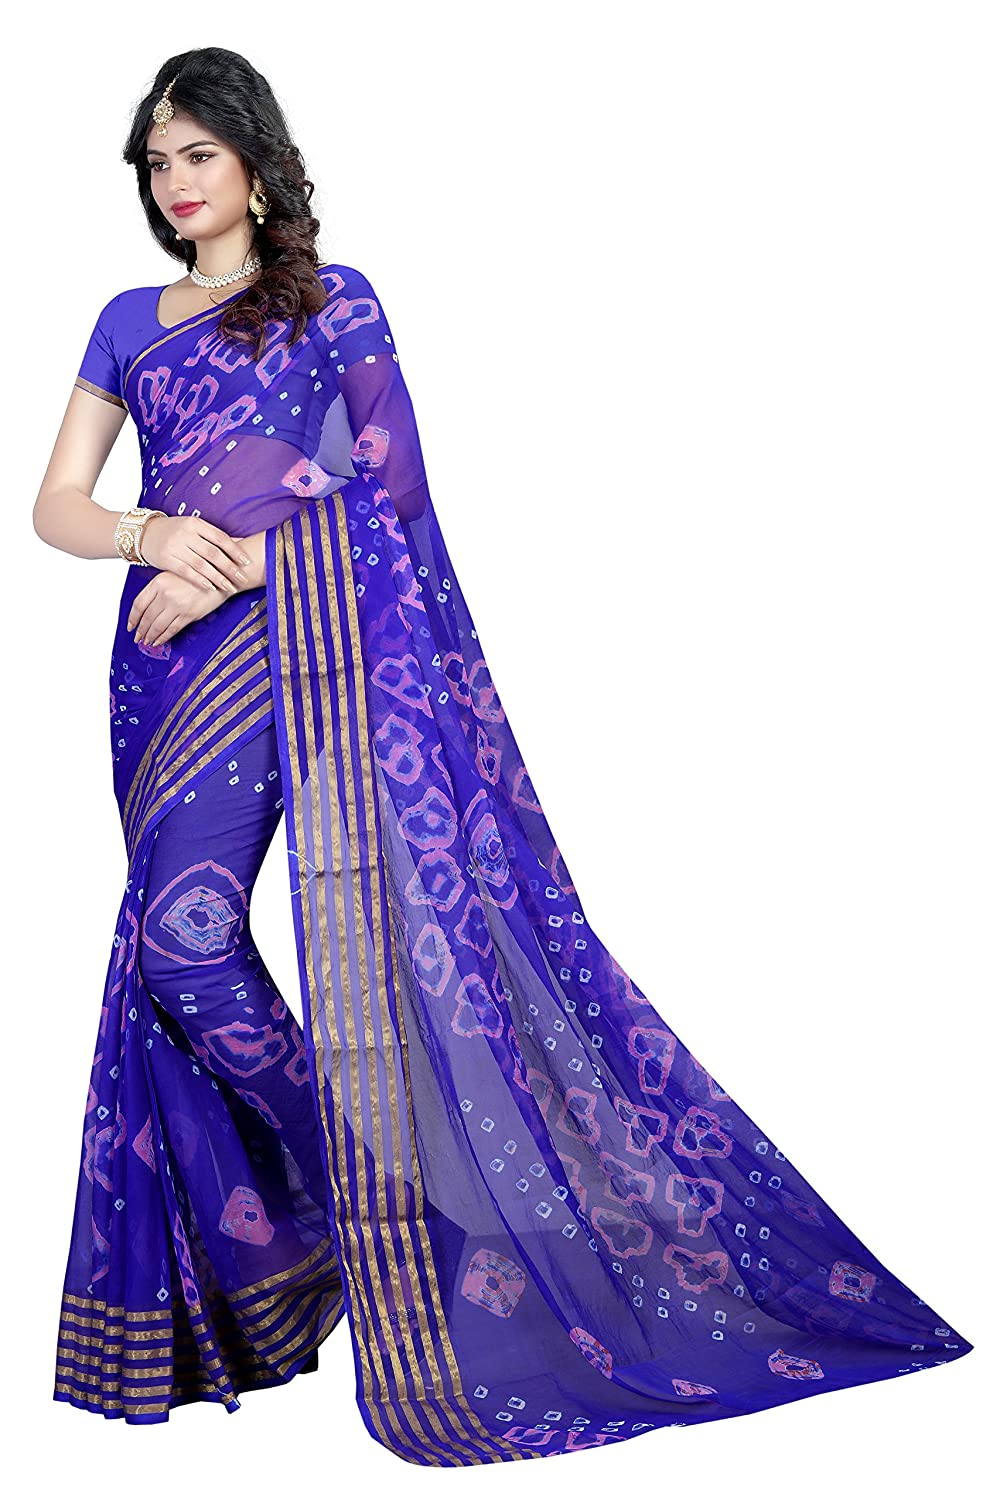 81b0fd21e654d Wedding Villa Women's Tussar Silk Bandhani Saree with Blouse Piece (6  line_1, Blue): Amazon.in: Clothing & Accessories